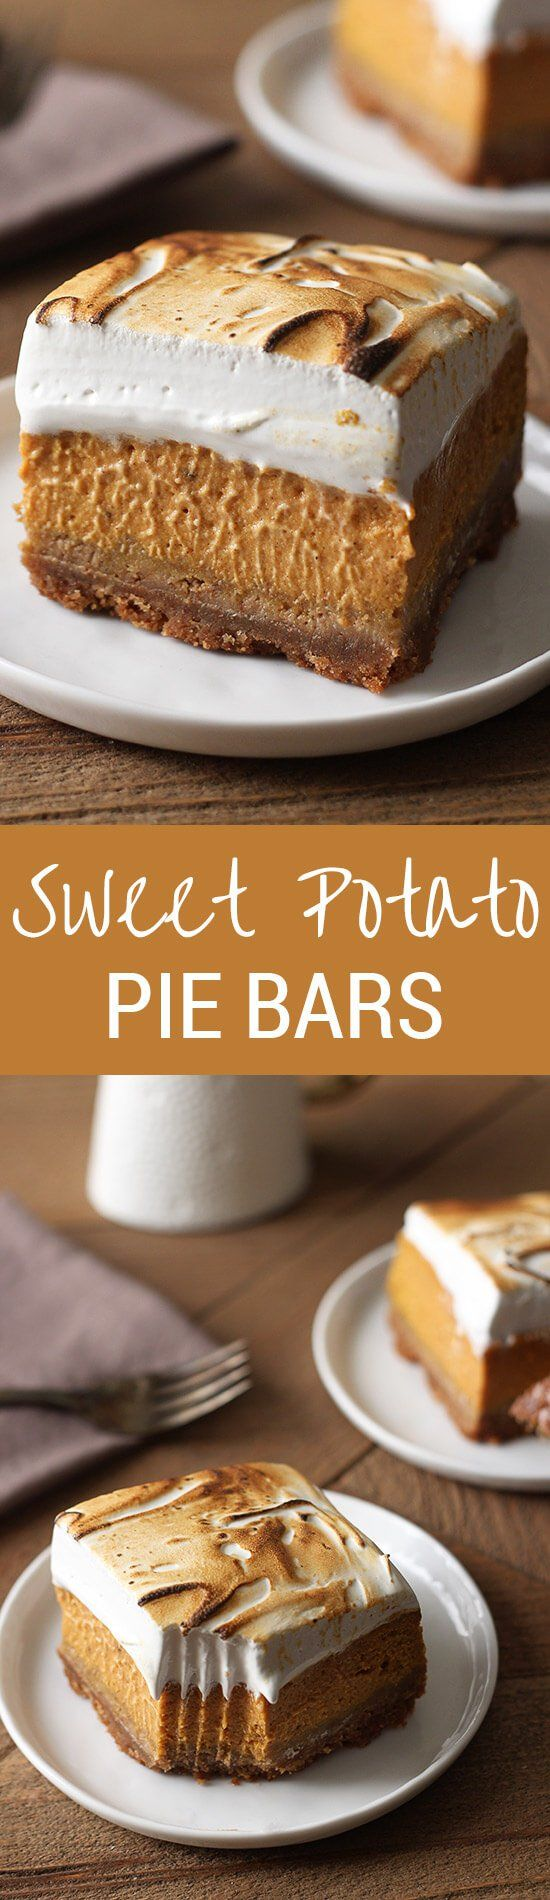 WHOA! Sweet Potato Pie Bars with a thick graham cracker crust, fresh sweet potato filling, and tall toasted homemade marshmallow topping. Perfect fall treat!